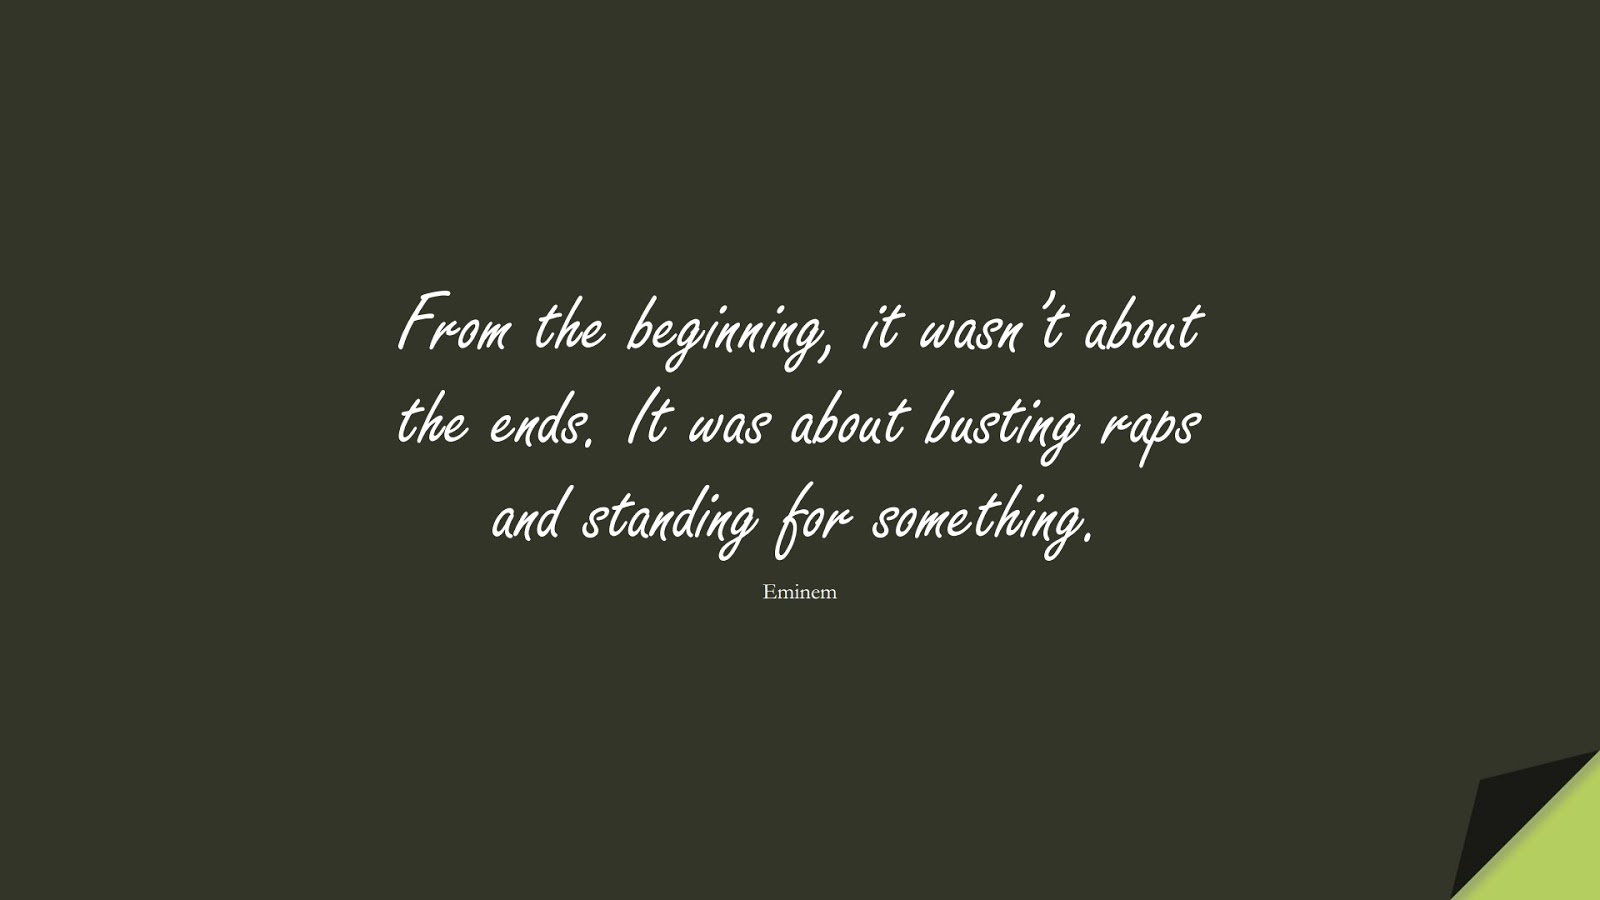 From the beginning, it wasn't about the ends. It was about busting raps and standing for something. (Eminem);  #FamousQuotes